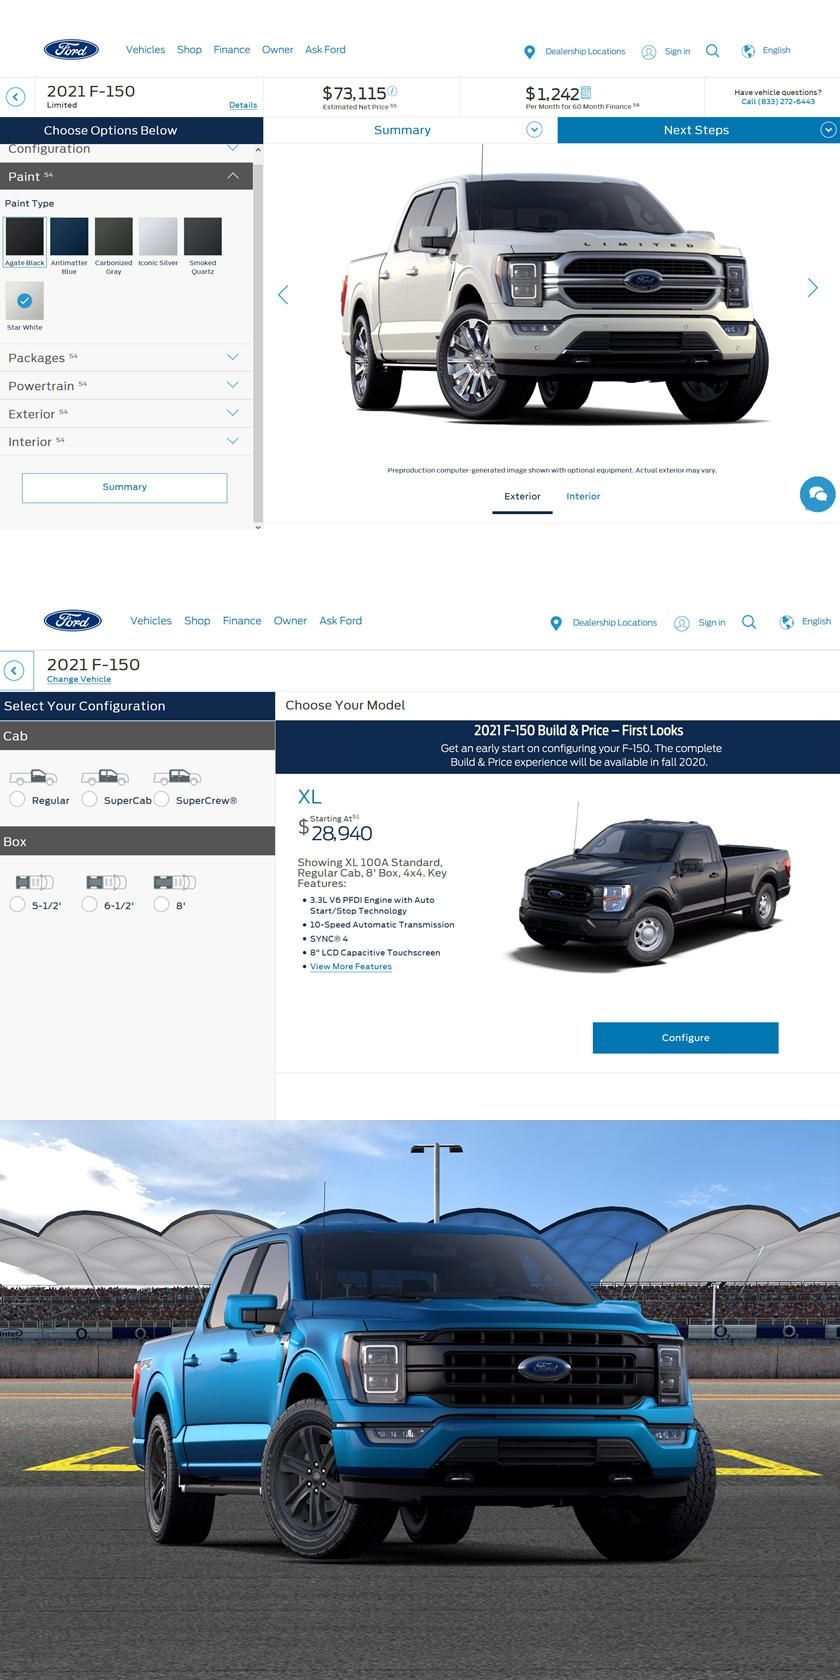 You Can Now Configure Your Dream Ford F 150 Ford Just Launched An Online Build Price Tool For The All New 2021 Ford In 2020 Ford F150 Ford Chevrolet Silverado 1500